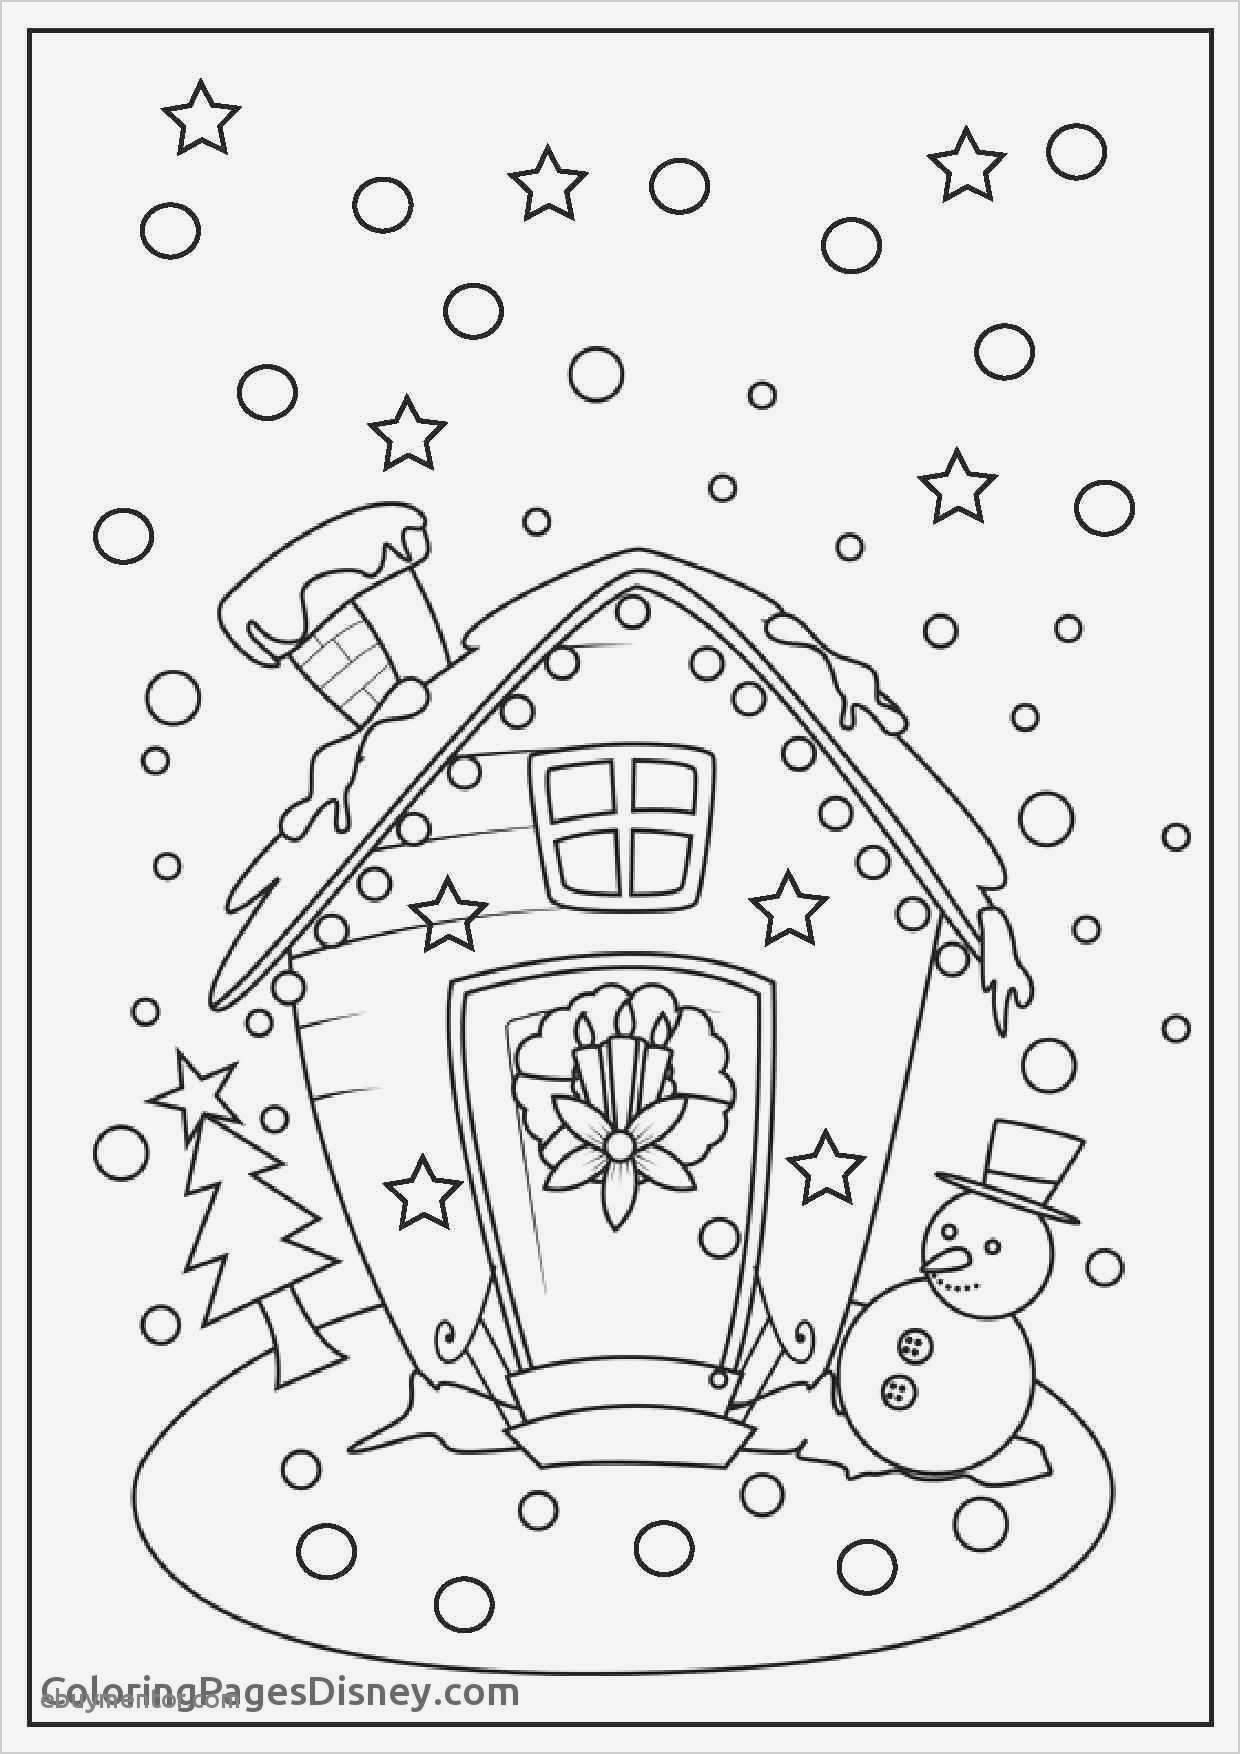 free printable kindergarten coloring pages Download-Family Picture Coloring Groovy Family Picture Coloring As If Free Christmas Coloring Pages For Kids 12-m